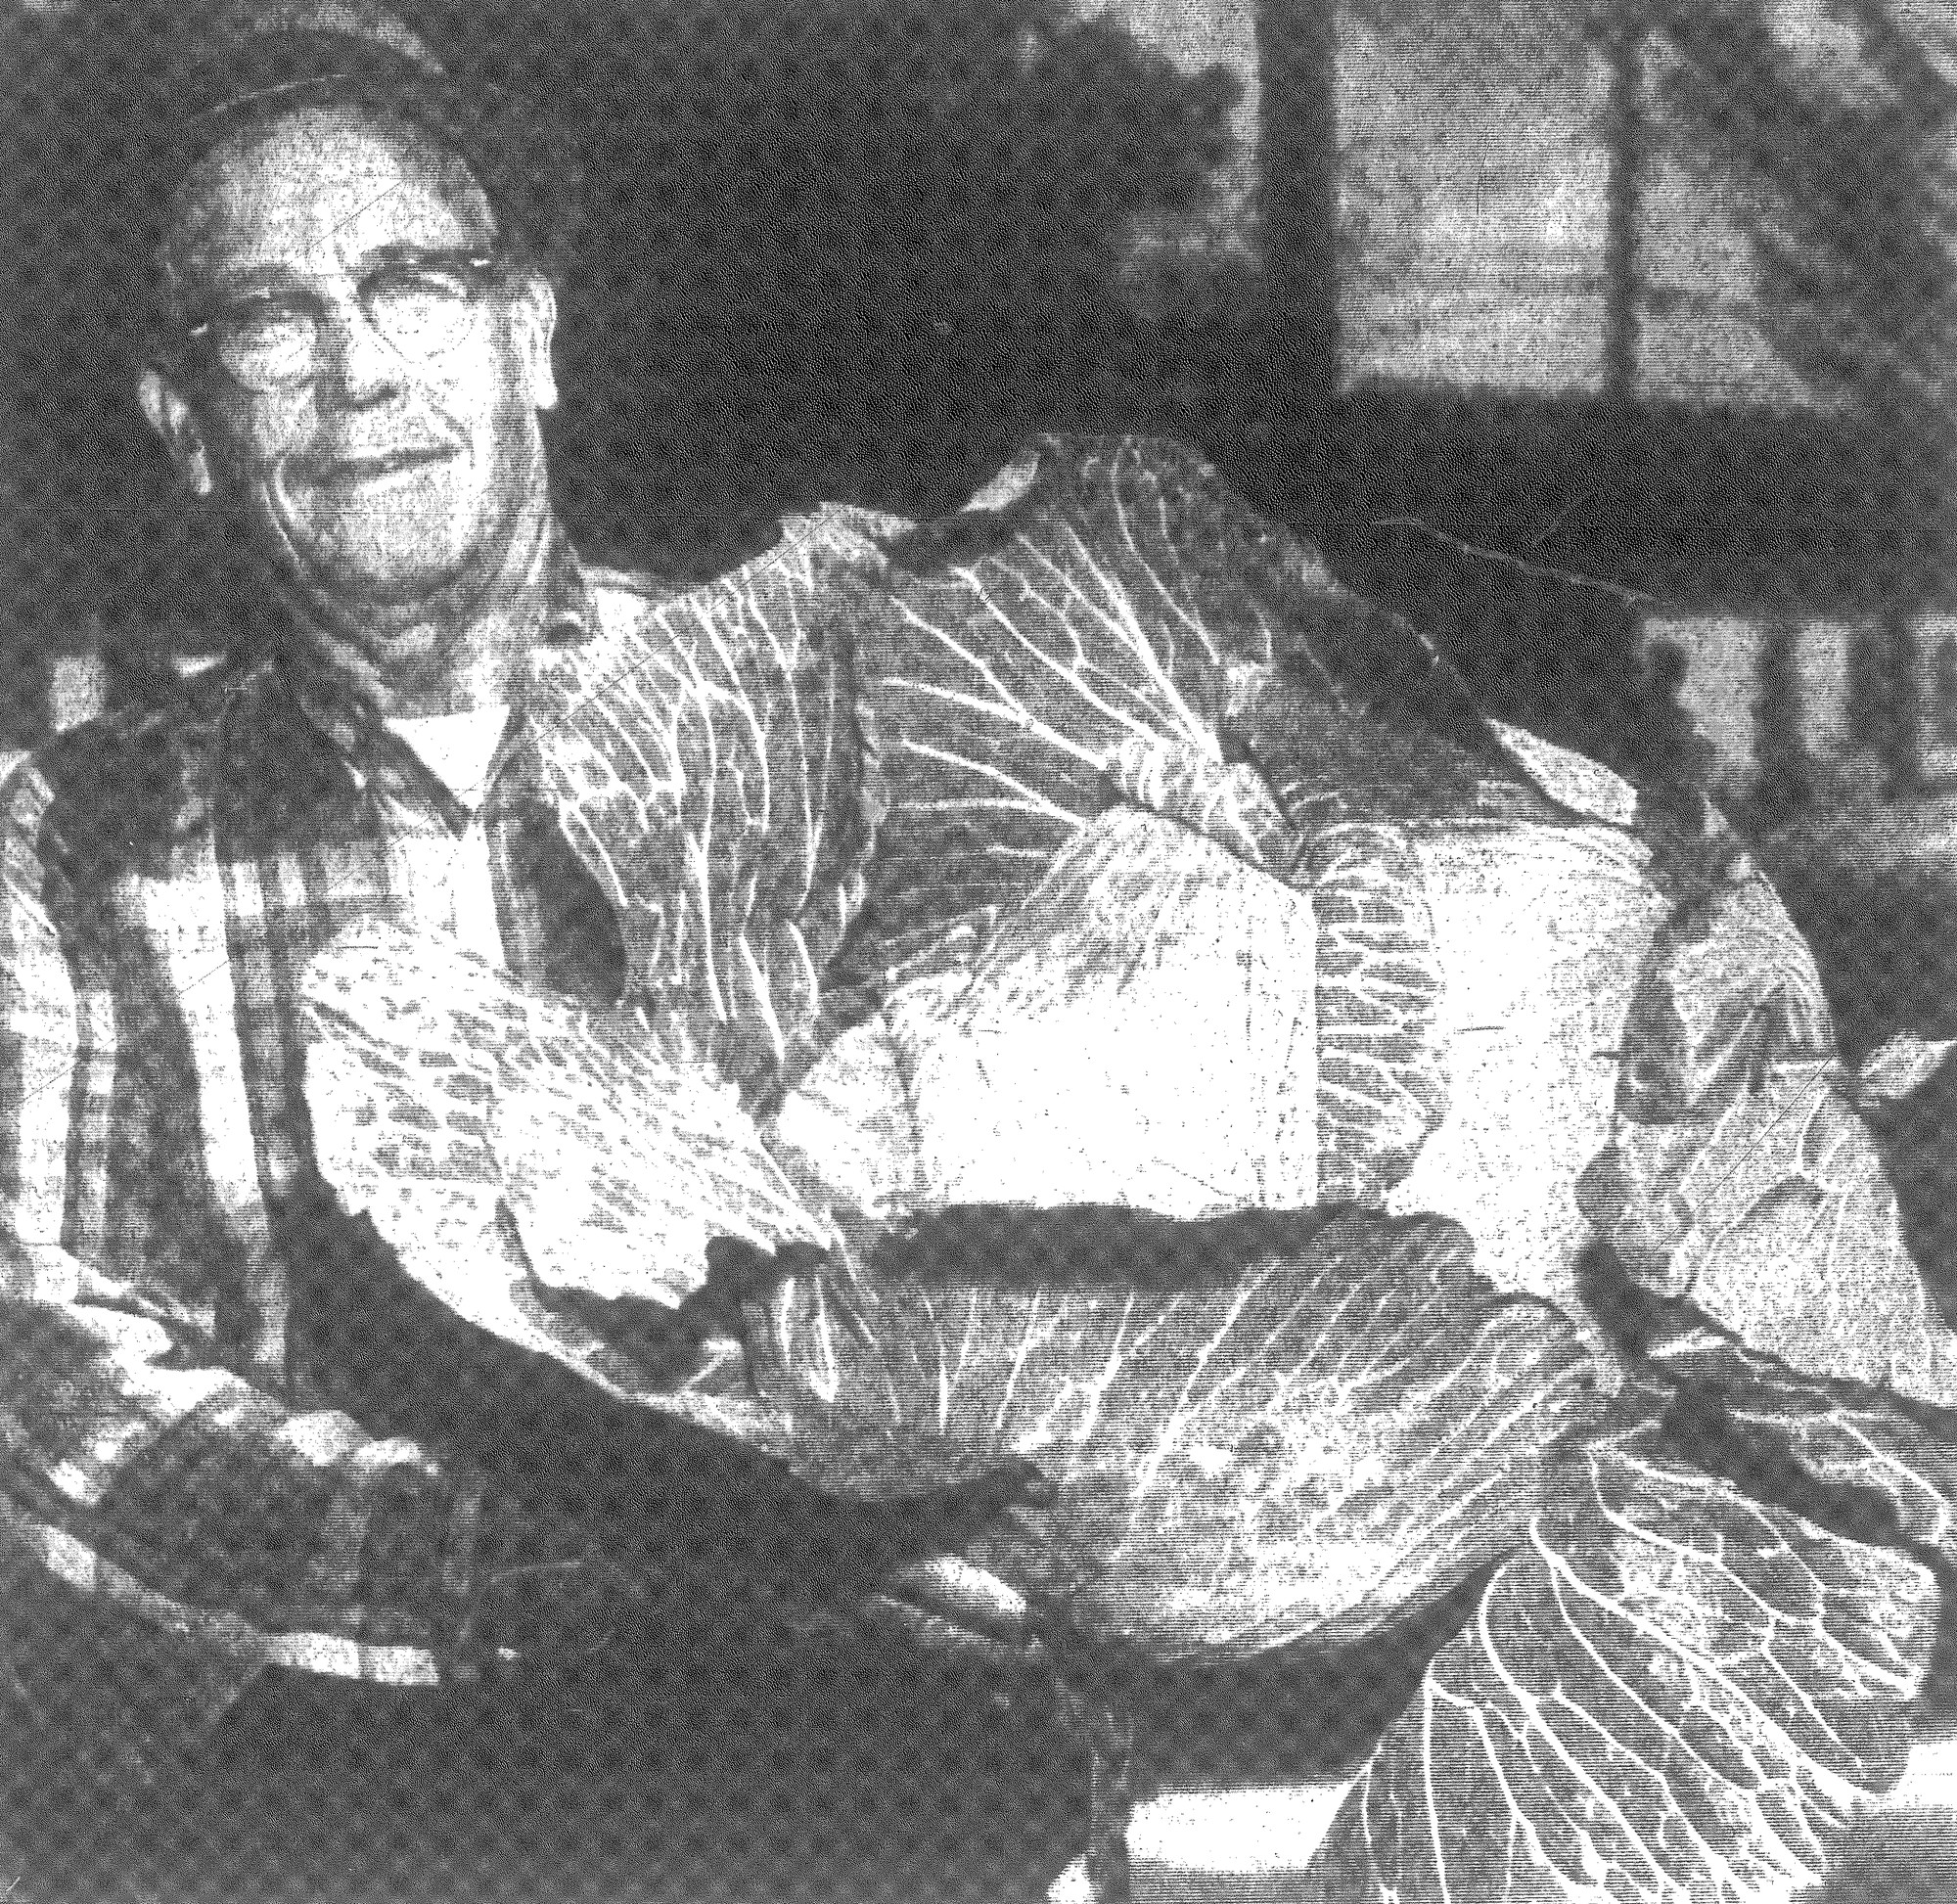 E. L. Carraway is seen with his monster cabbage in 1968.